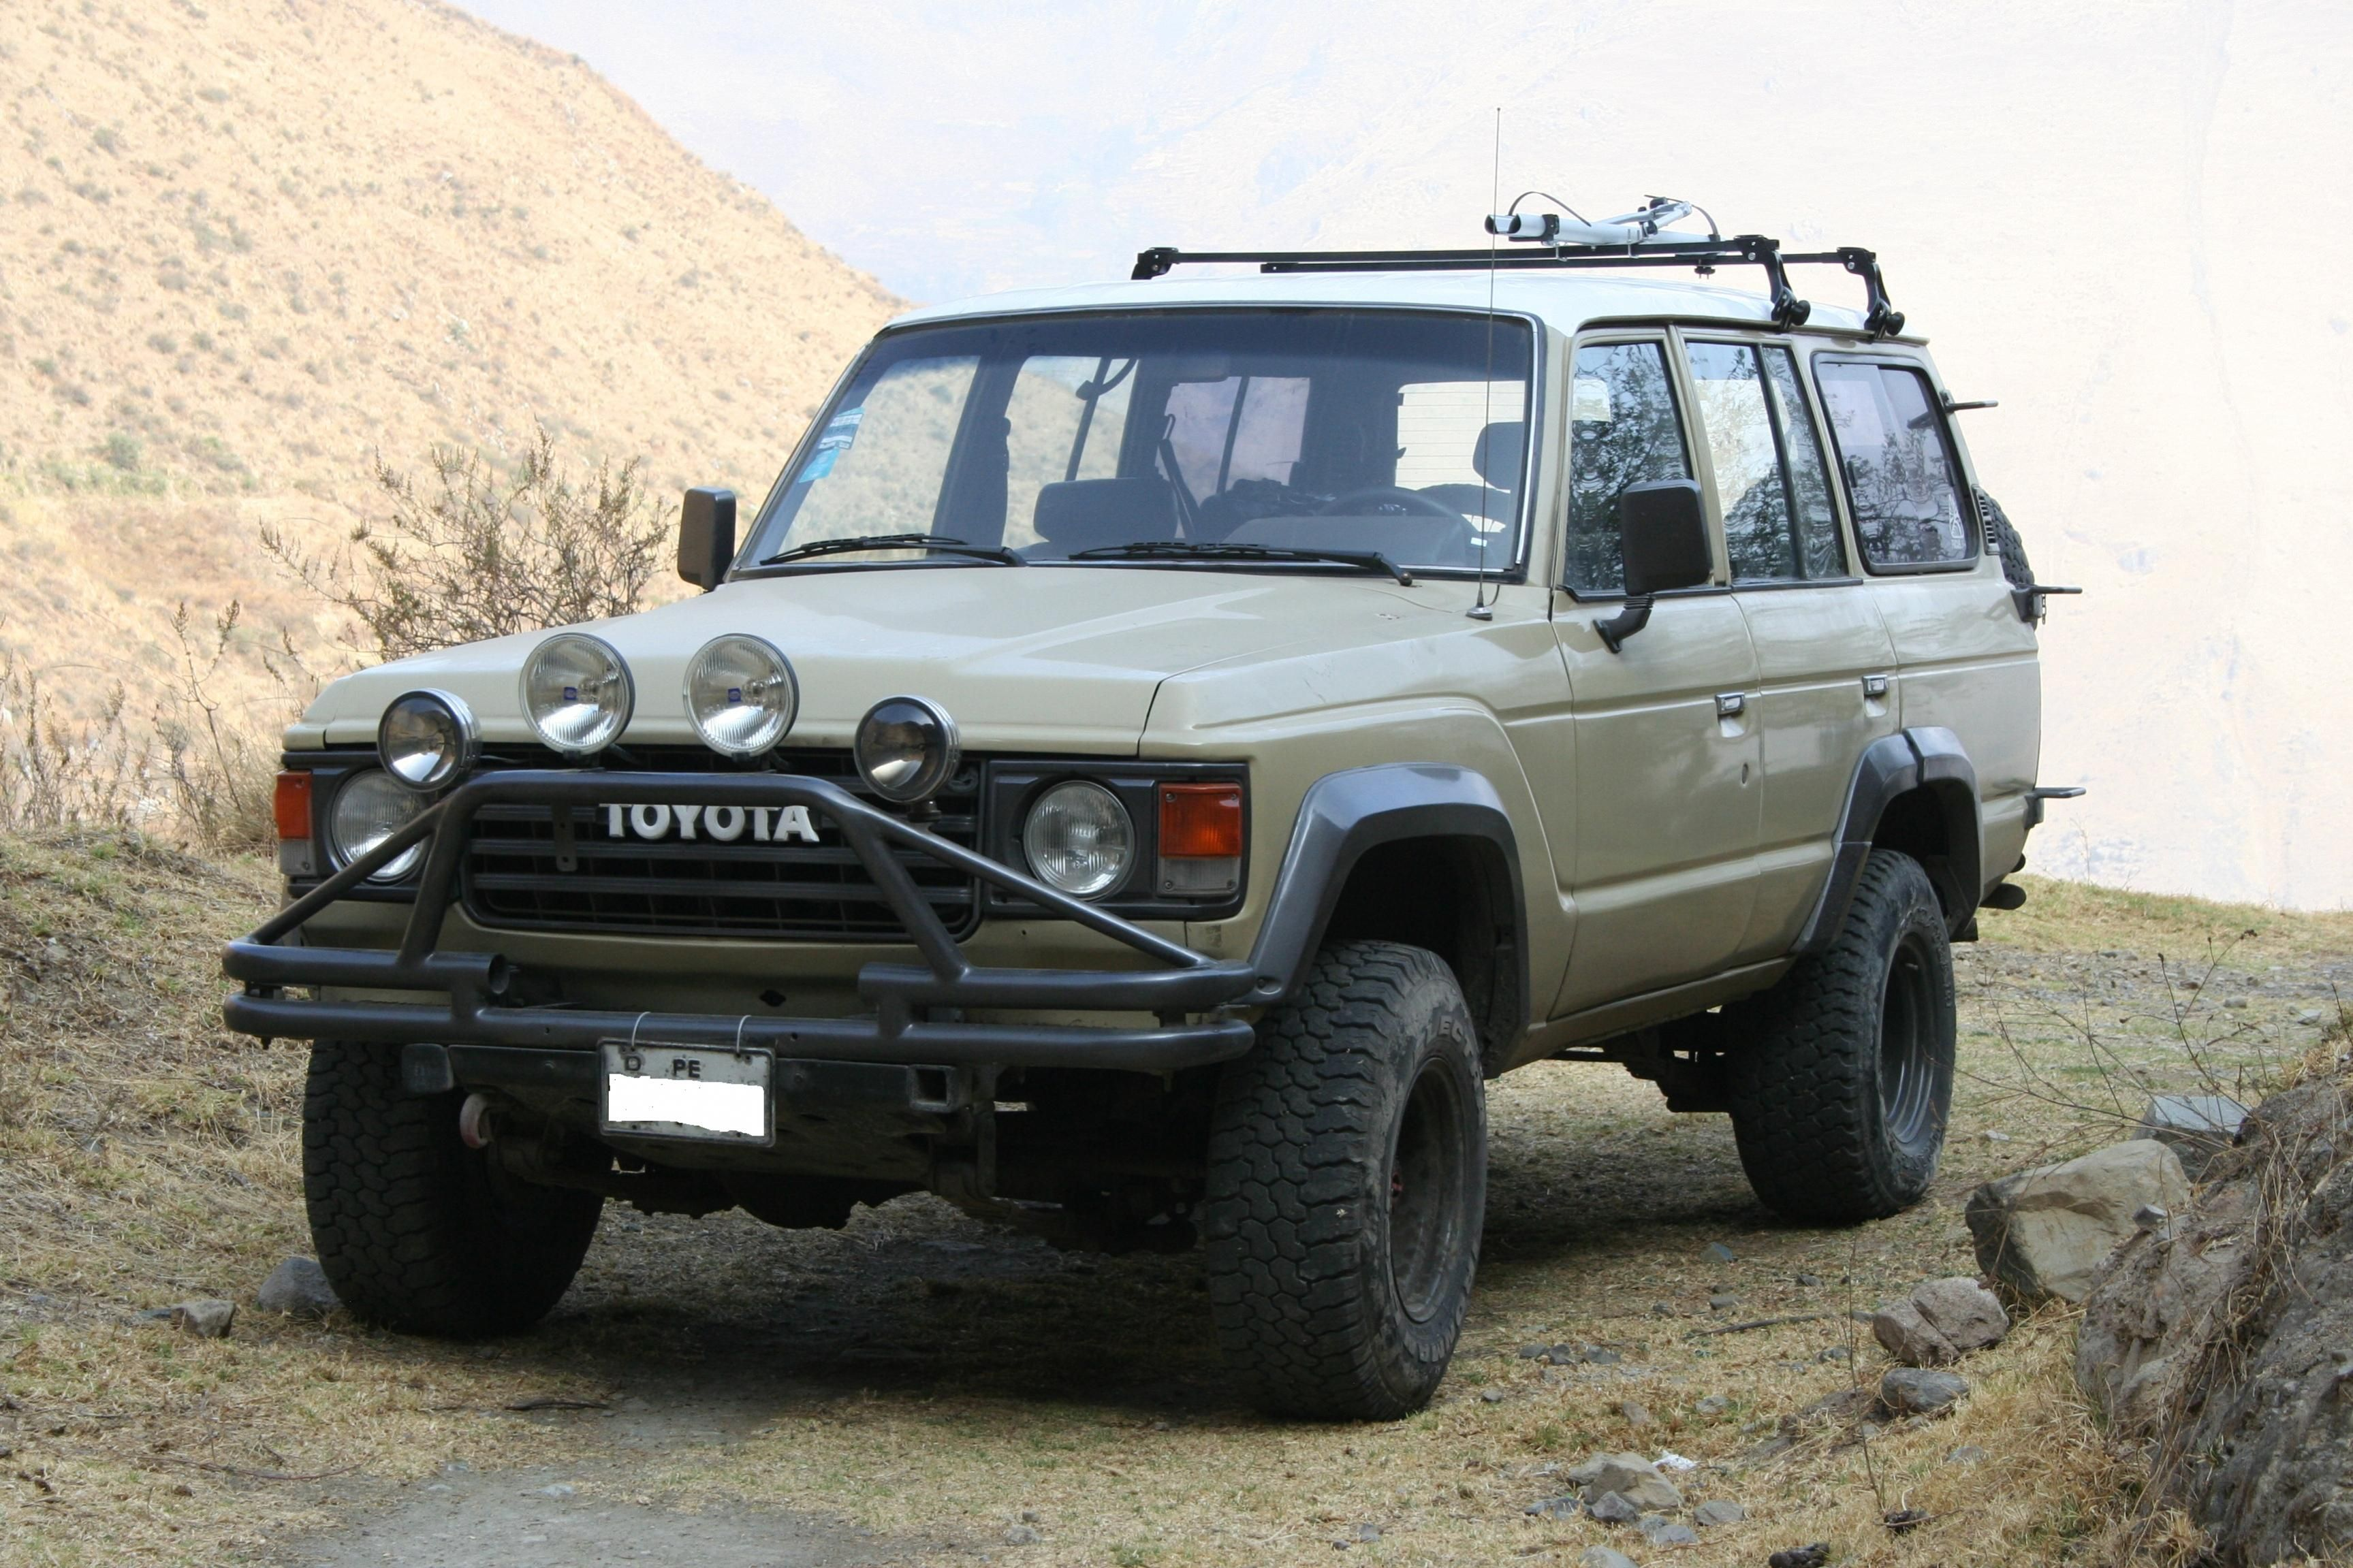 1984 toyota land cruiser fj60 in kevlar finish fj60 pinterest land cruiser toyota land cruiser and toyota